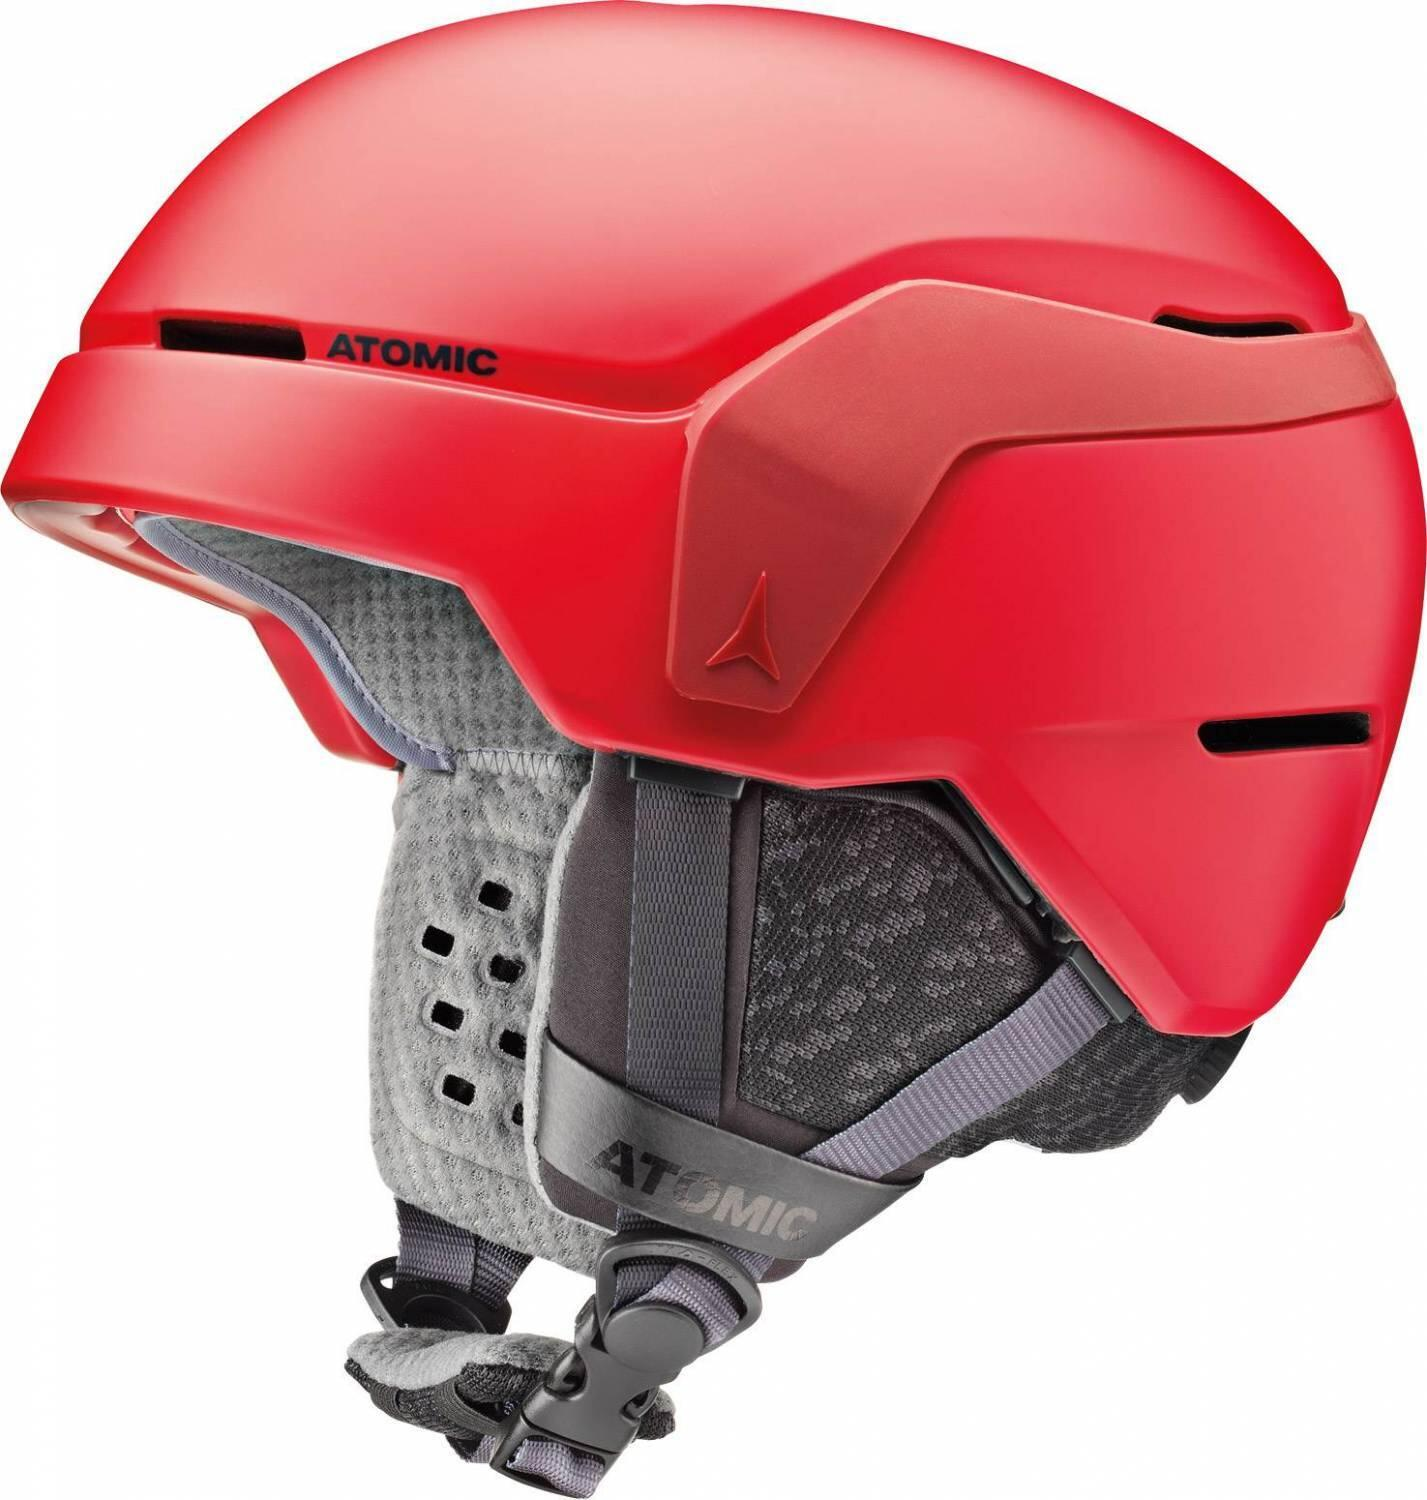 atomic-count-skihelm-gr-ouml-szlig-e-51-55-cm-red-